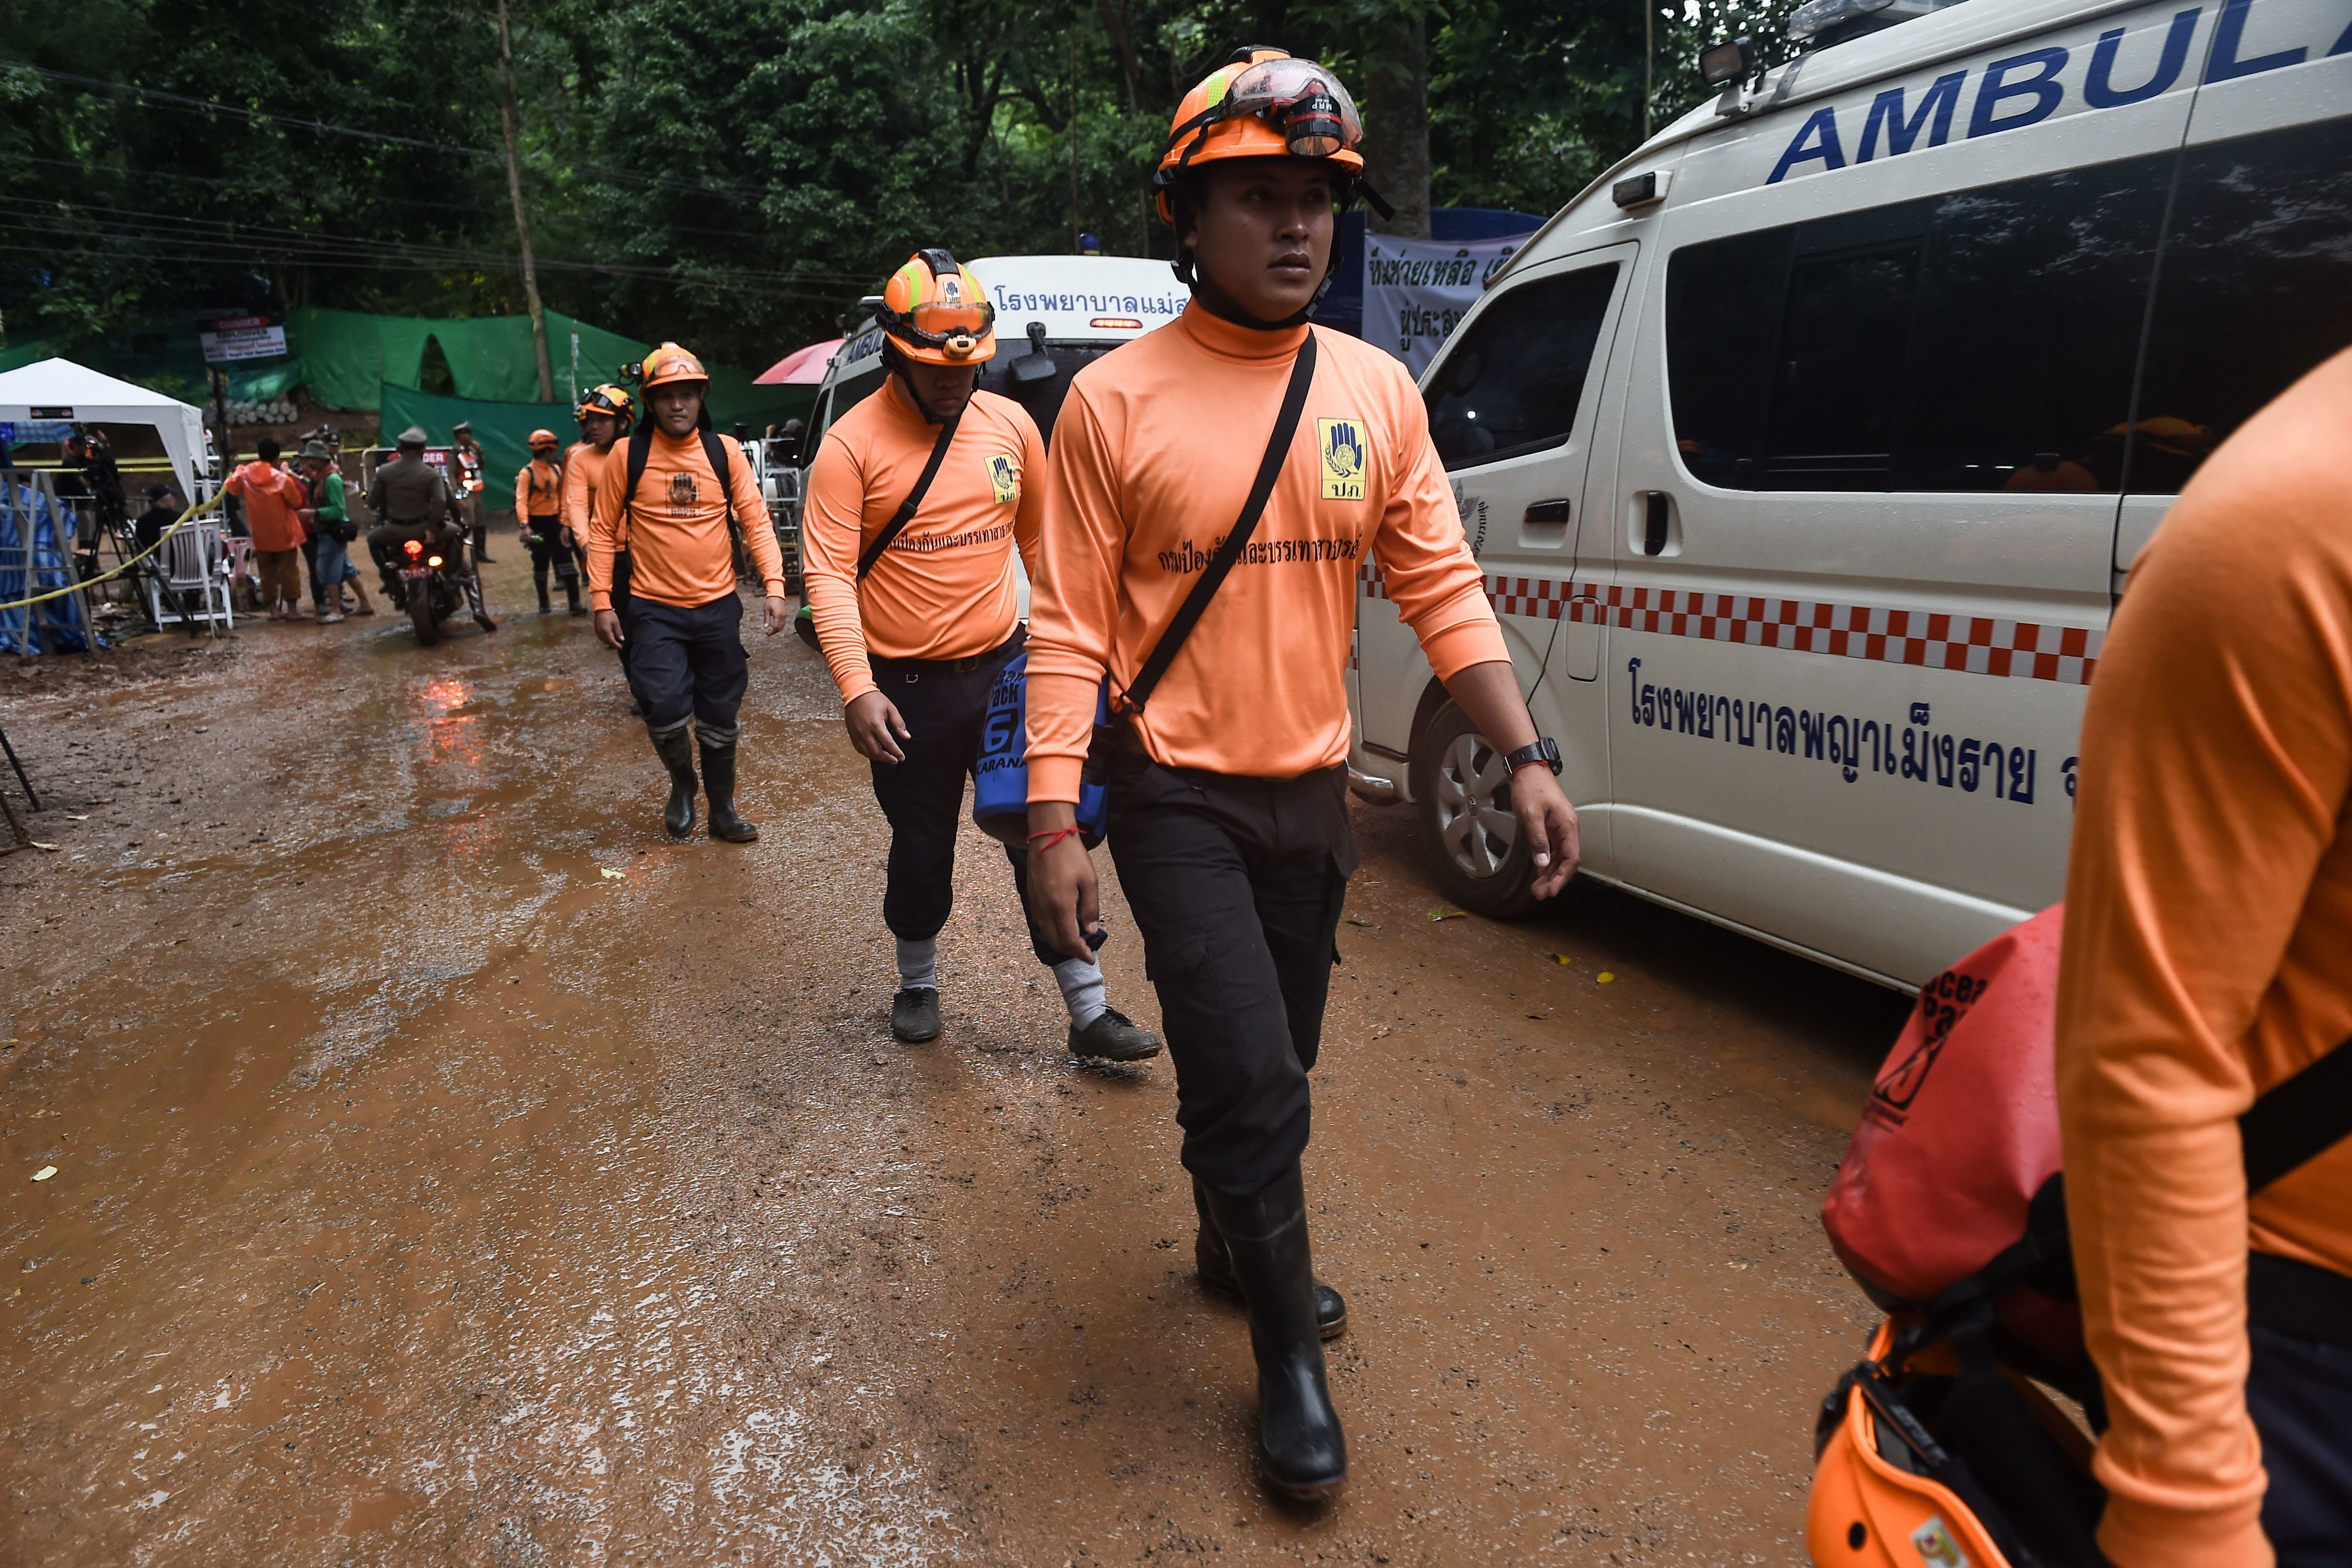 Rescue workers are seen at the Tham Luang cave area as operations continue for the 12 boys and their coach trapped at the cave in Khun Nam Nang Non Forest Park in the Mae Sai district of Chiang Rai province on July 8, 2018. - Thai authorities told media on July 8 to leave a camp site near the cave where 12 boys and their coach have been trapped for more than two weeks so that 'victims' could be helped, possibly signalling a long-awaited rescue effort to get them out. (Photo by Lillian SUWANRUMPHA / AFP)        (Photo credit should read LILLIAN SUWANRUMPHA/AFP/Getty Images)